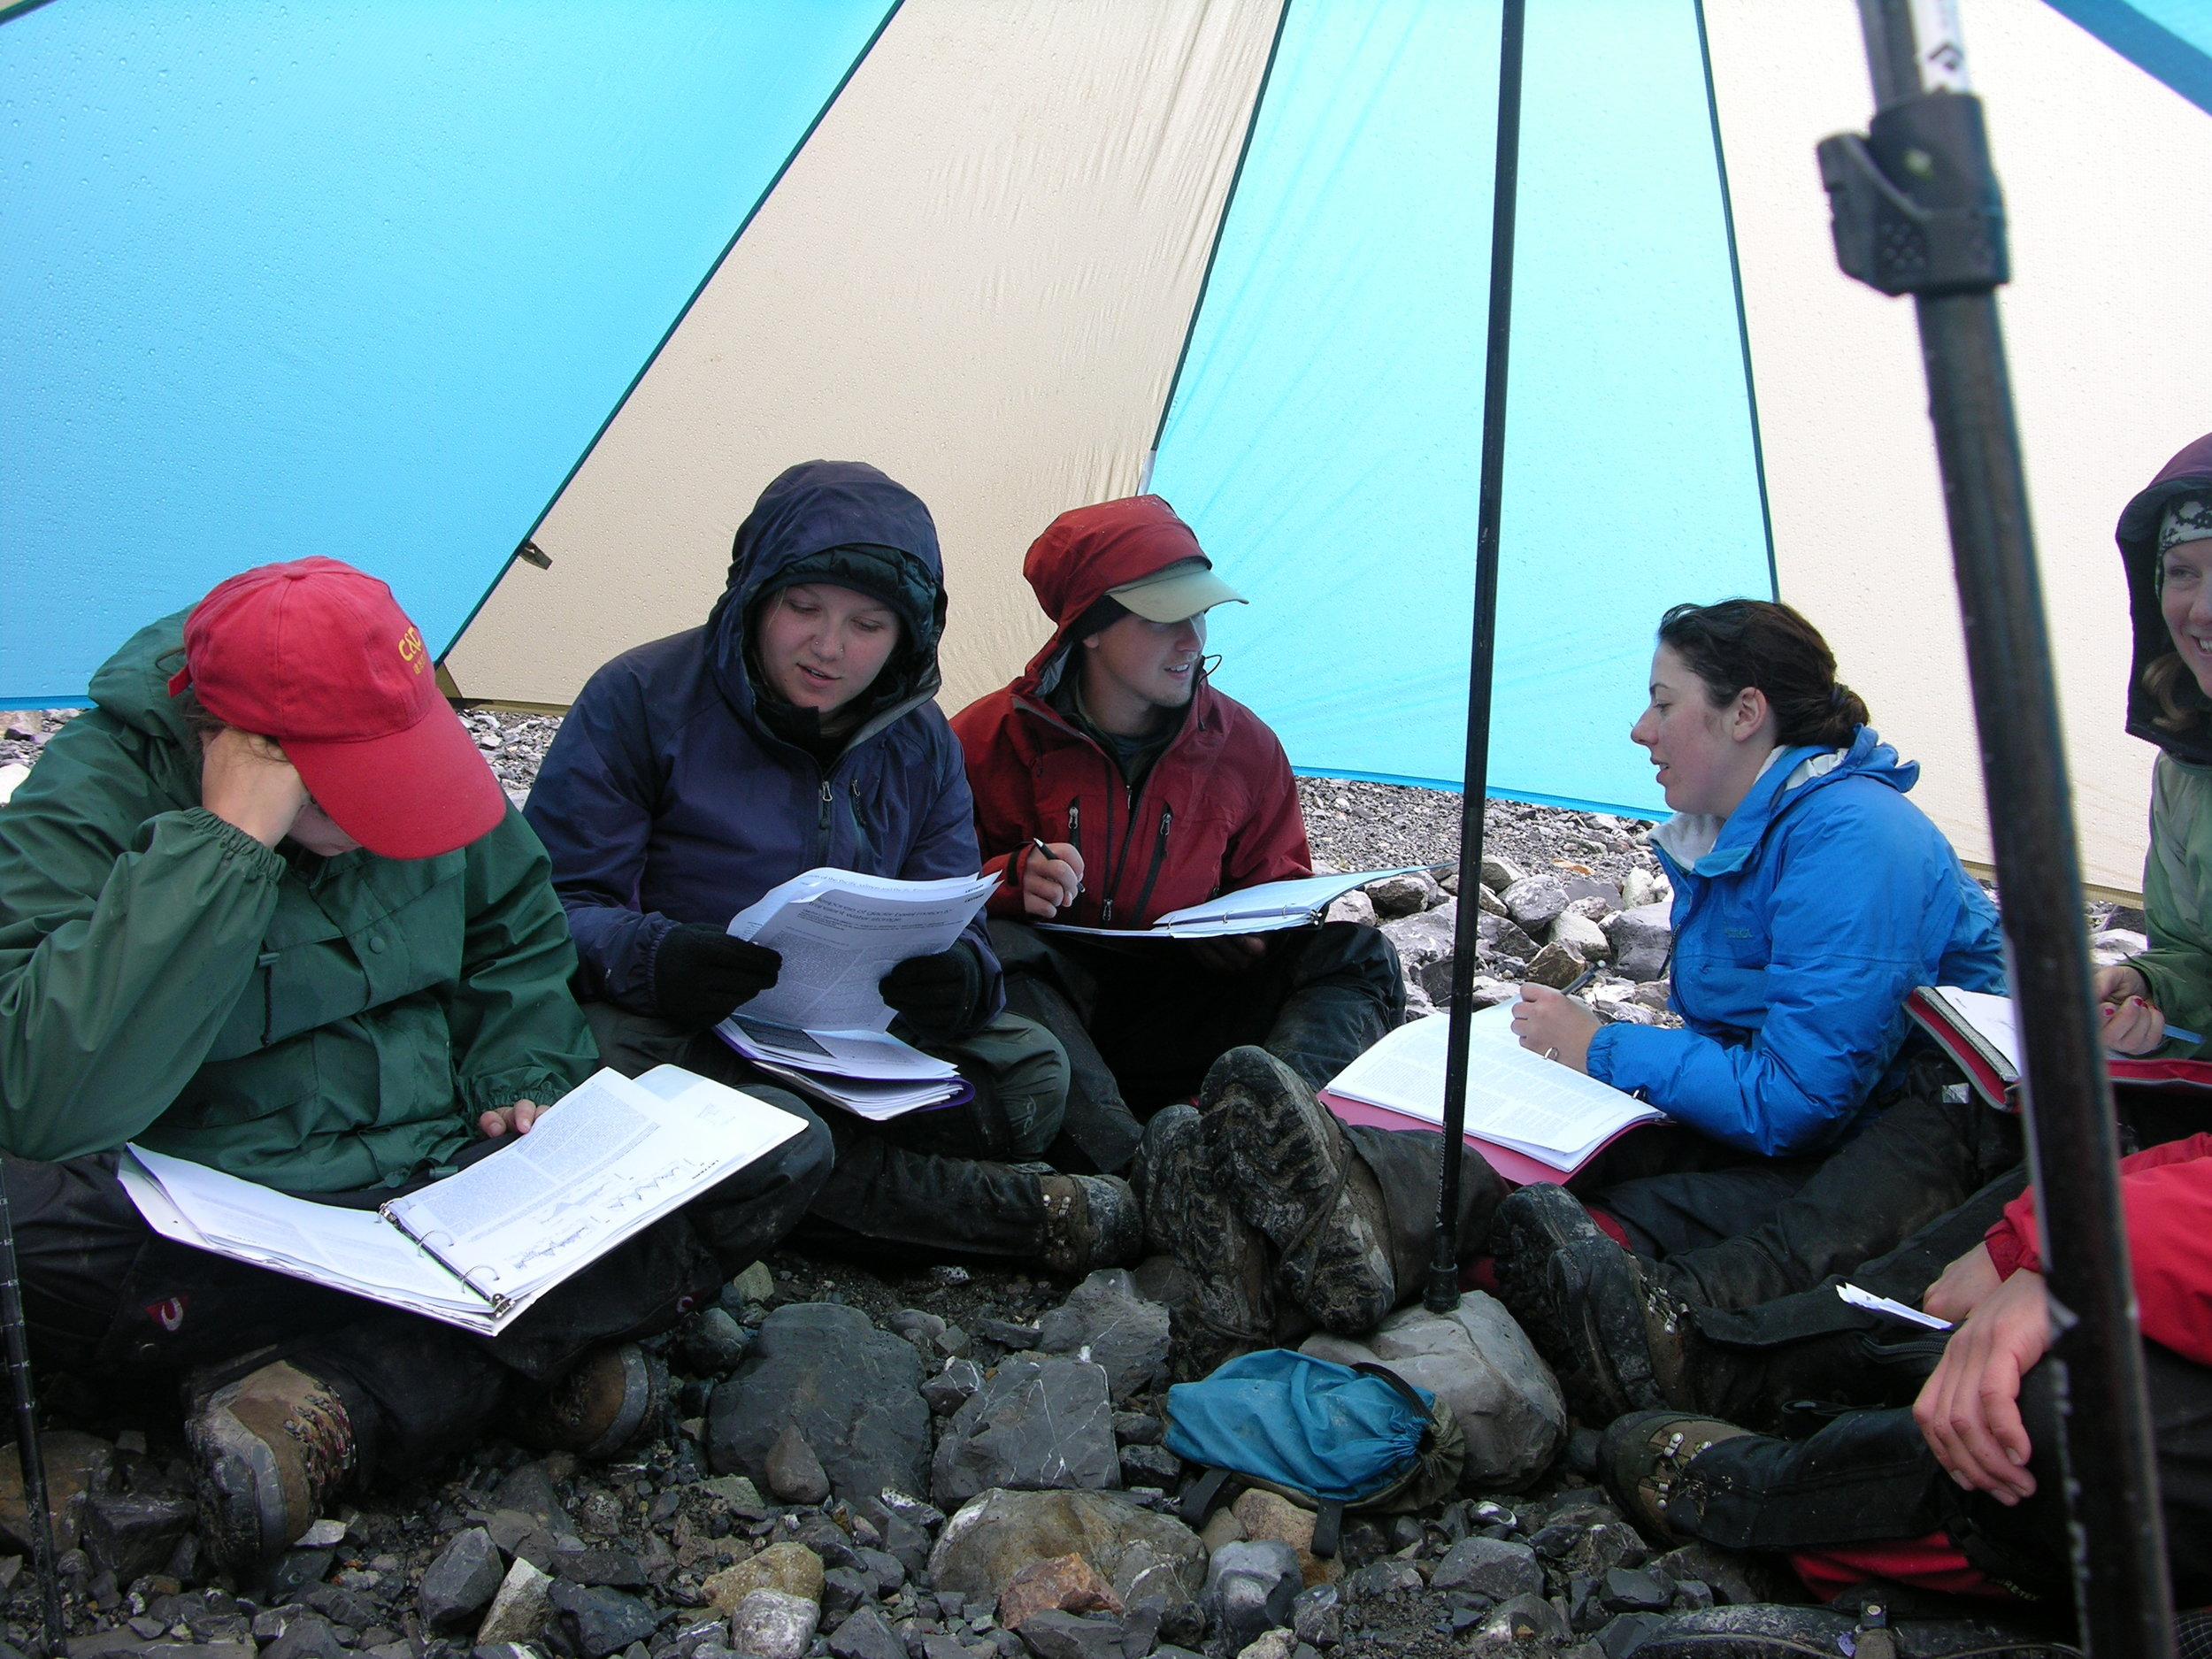 Field studies students study in the Alaska back country